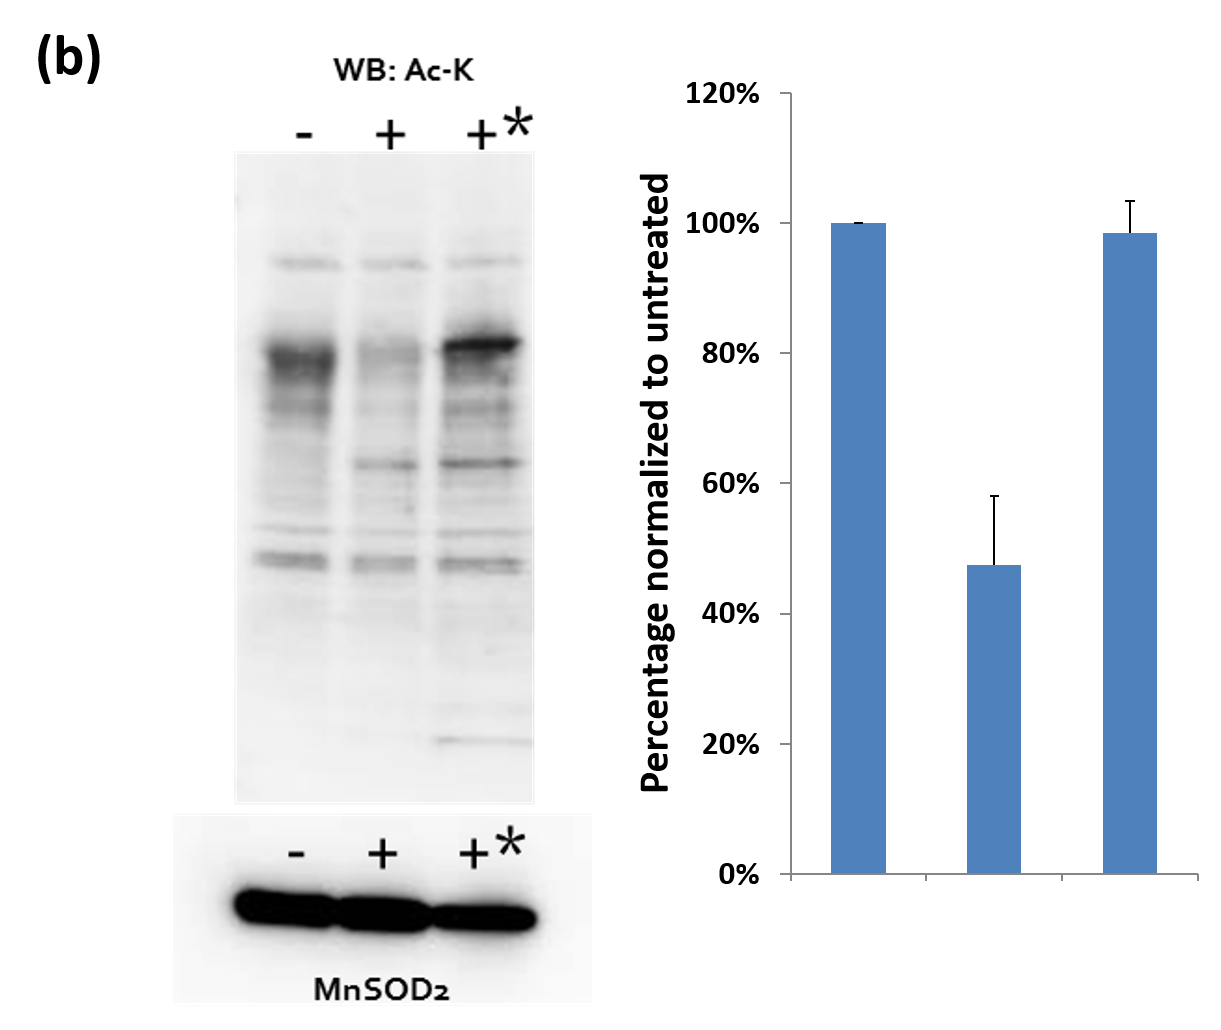 Figure 3b:  Mitochondria were isolated from A431 either untreated (-), treated with 1uM TSA (+), or 1uM TSA plus 50mM nicotinamide (+*). 30ug of mitochondrial extracts were resolved in SDS-PAGE gel and transferred to a PVDF membrane. Acetylated proteins were detected with AAC02 antibody. Protein loading was determined by mitochondrial superoxide dismutase 2 (MnSOD2).